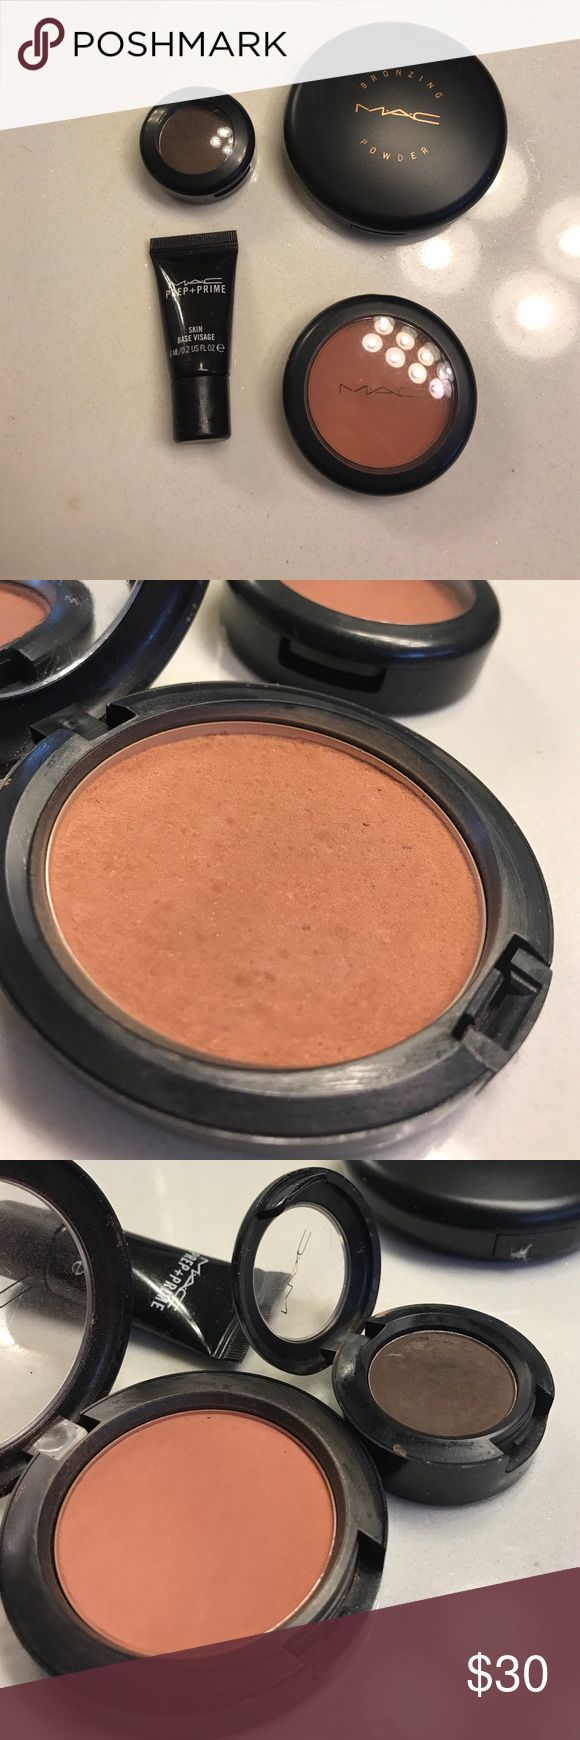 💄MAC Cosmetics make up bundle💄 Bronzer, blush, eyeshadow and sample bundle. All items have been used!! Used a few times, I've posted pictures above with details. MAC Cosmetics Makeup